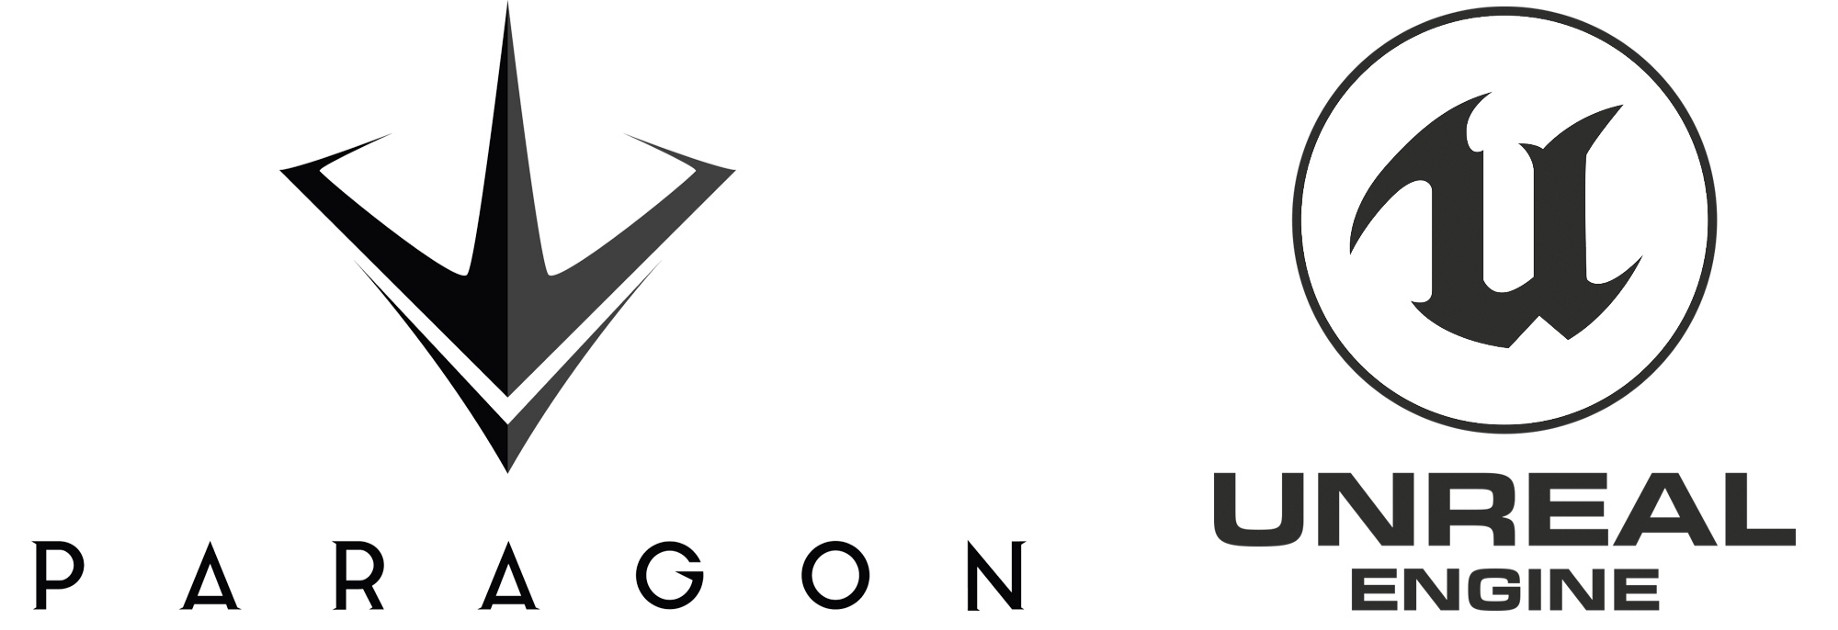 Paragon and Unreal Engine: AAA Development that benefits all